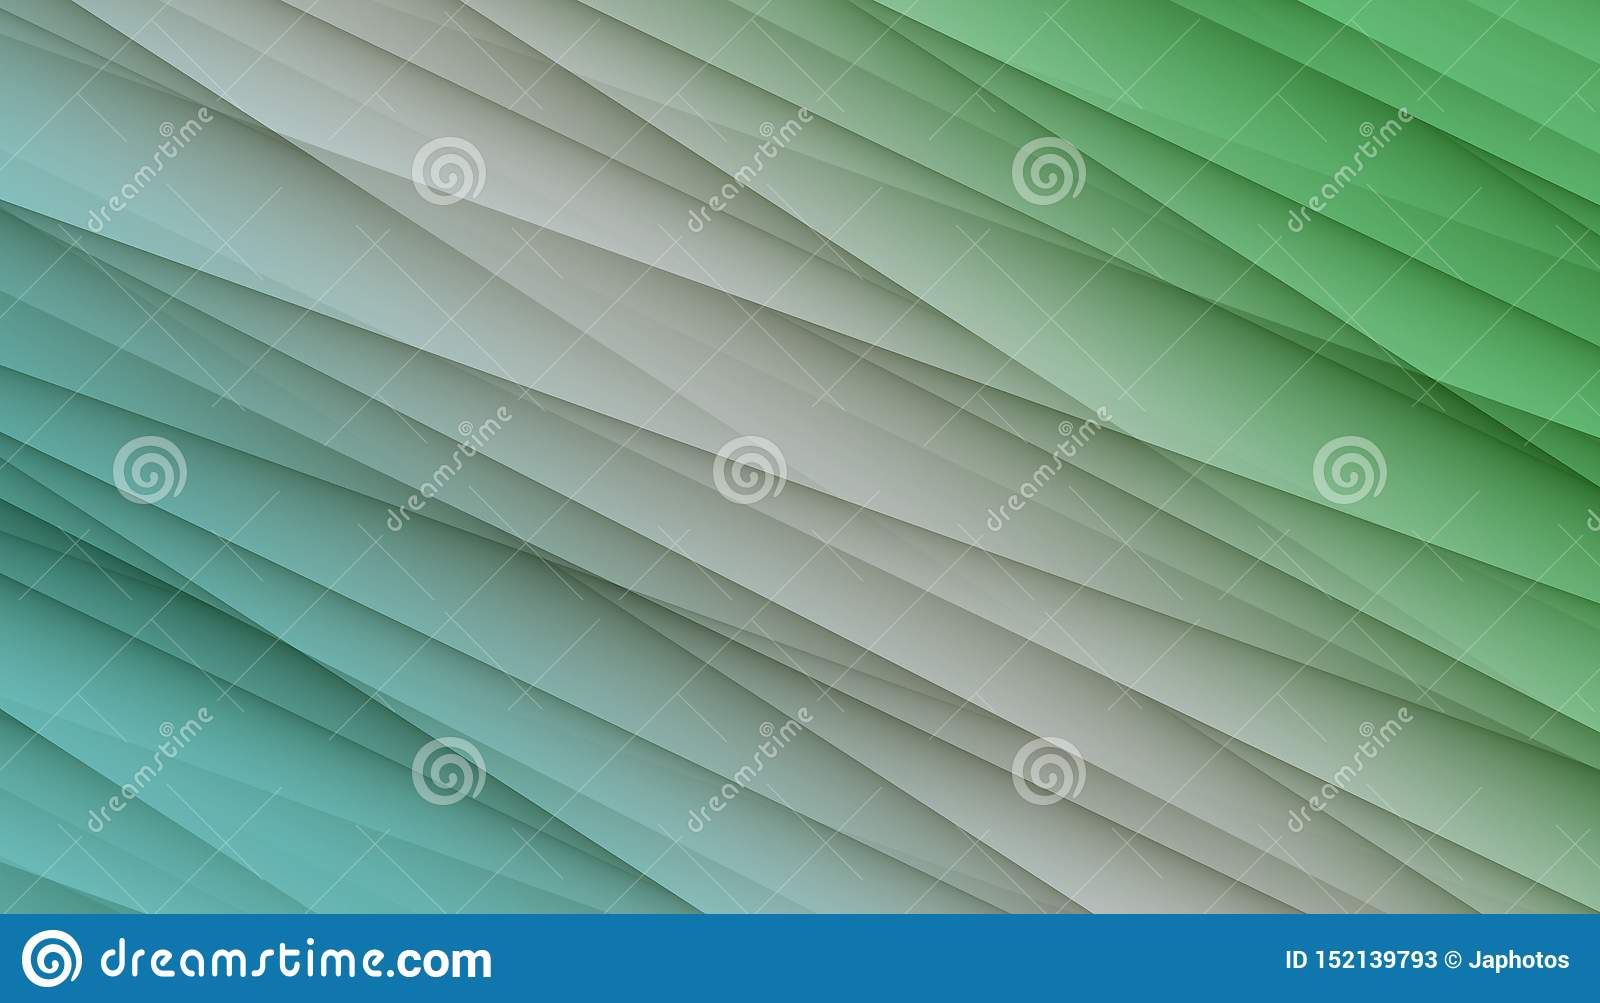 Blue white green diagonal irregular lines angles abstract background design illustration.